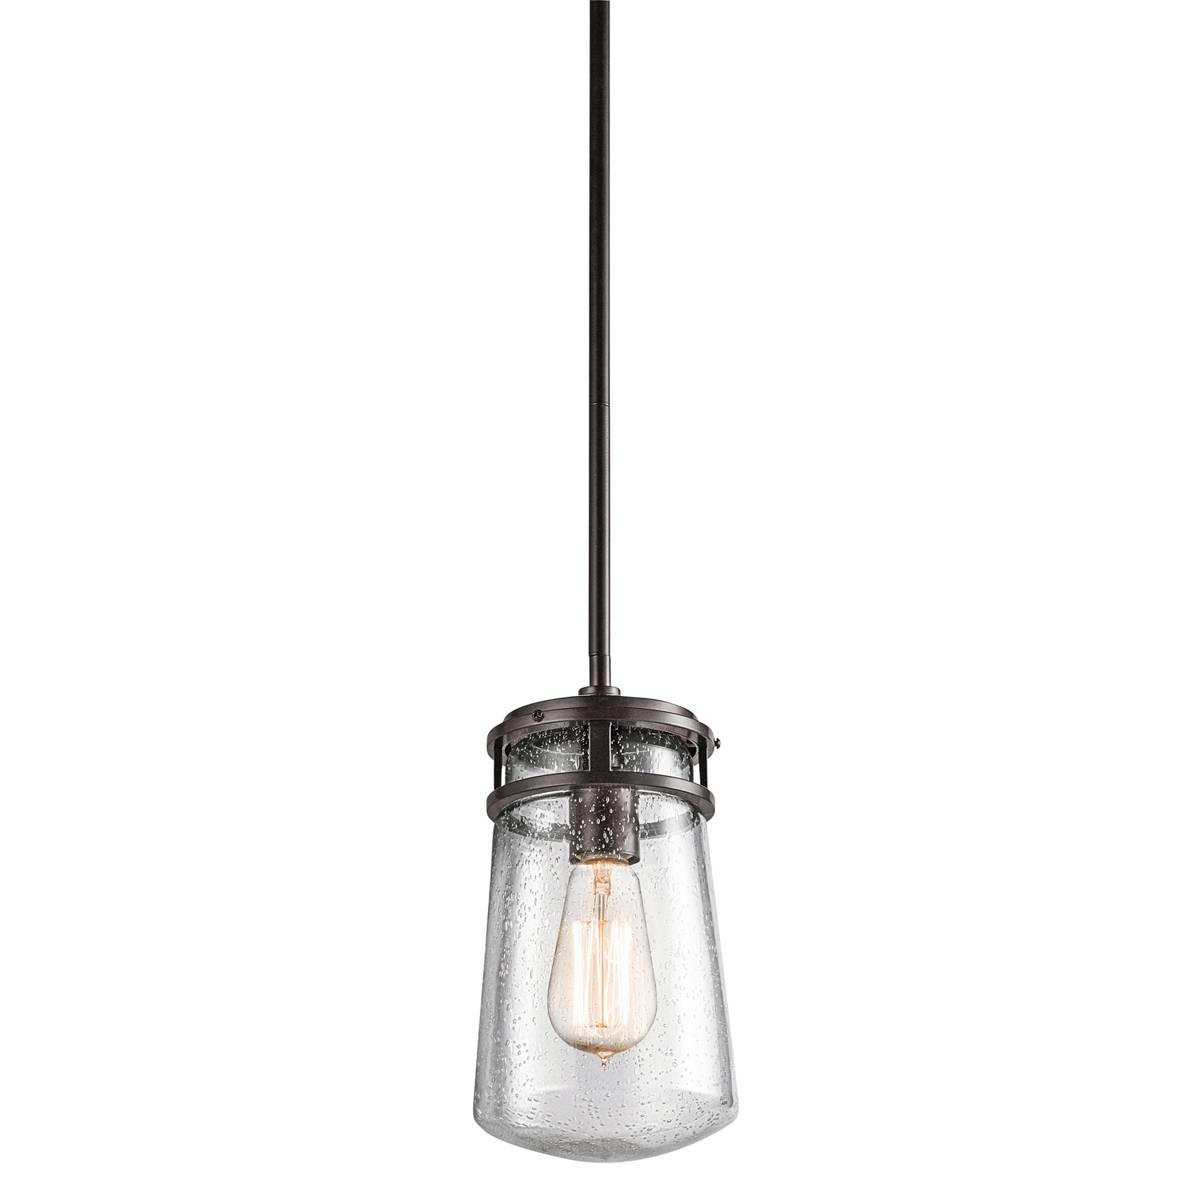 Astonishing Outdoor Lighting Pendants 45 For Your Juno Track for Juno Pendants (Image 1 of 15)